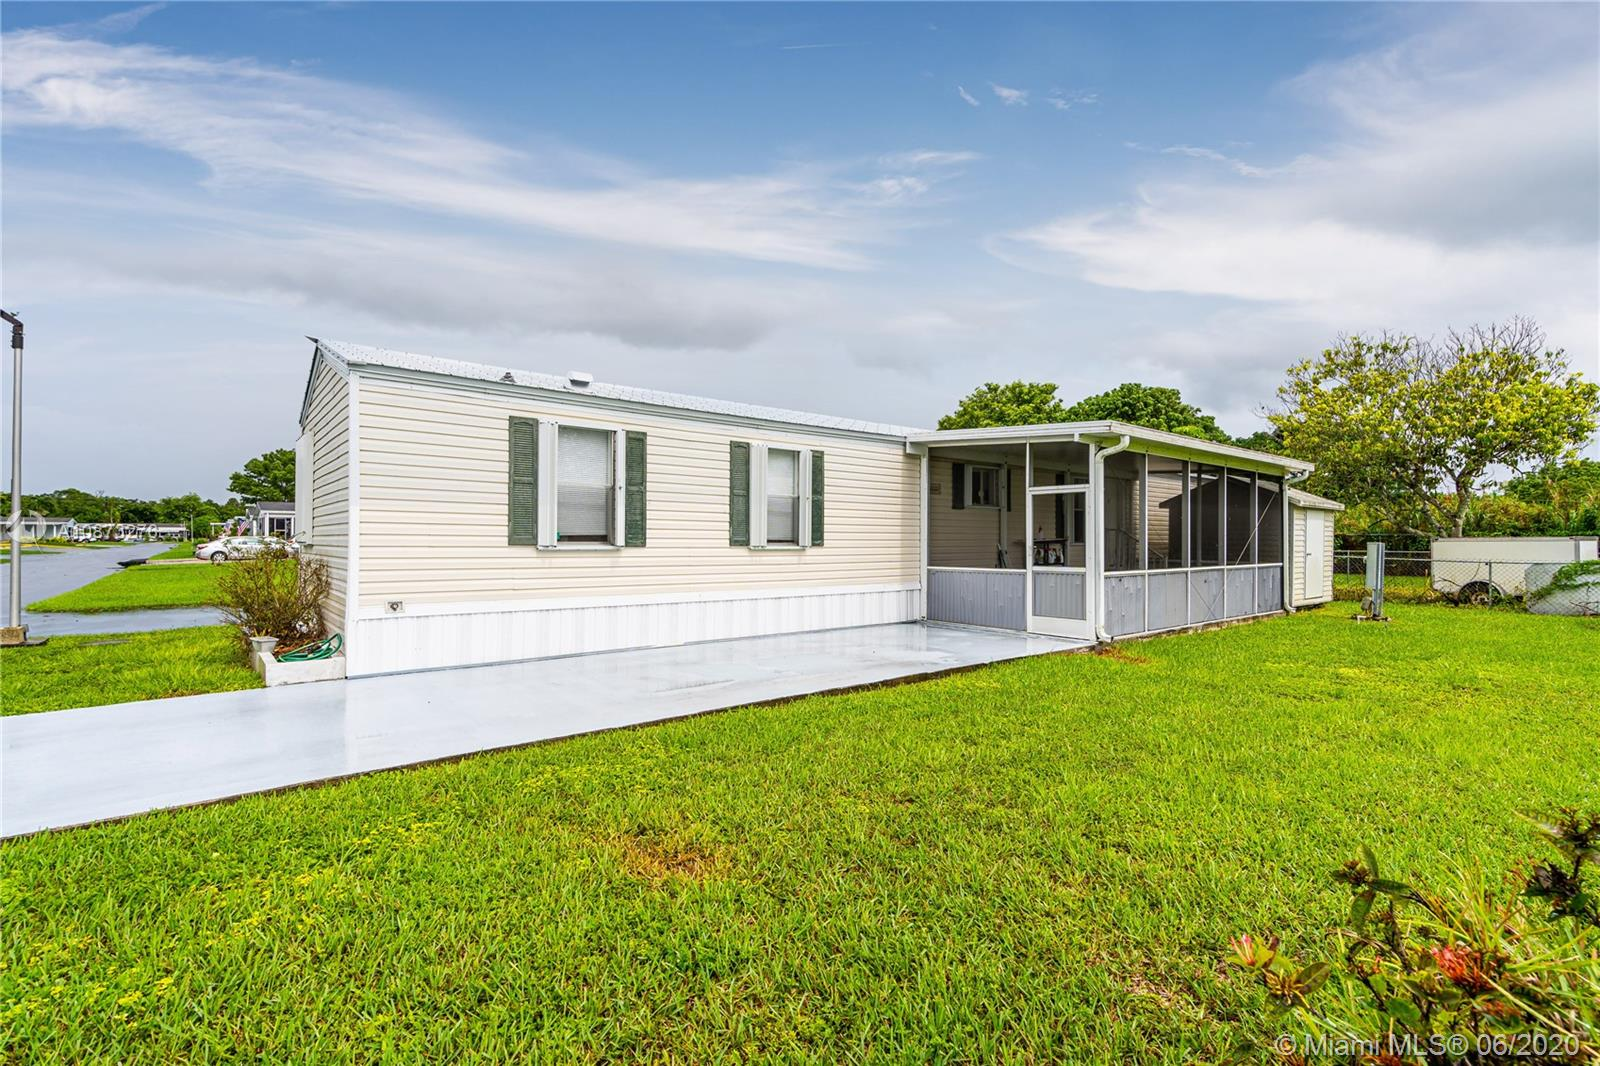 35303 SW 180th Ave Property Photo - Homestead, FL real estate listing